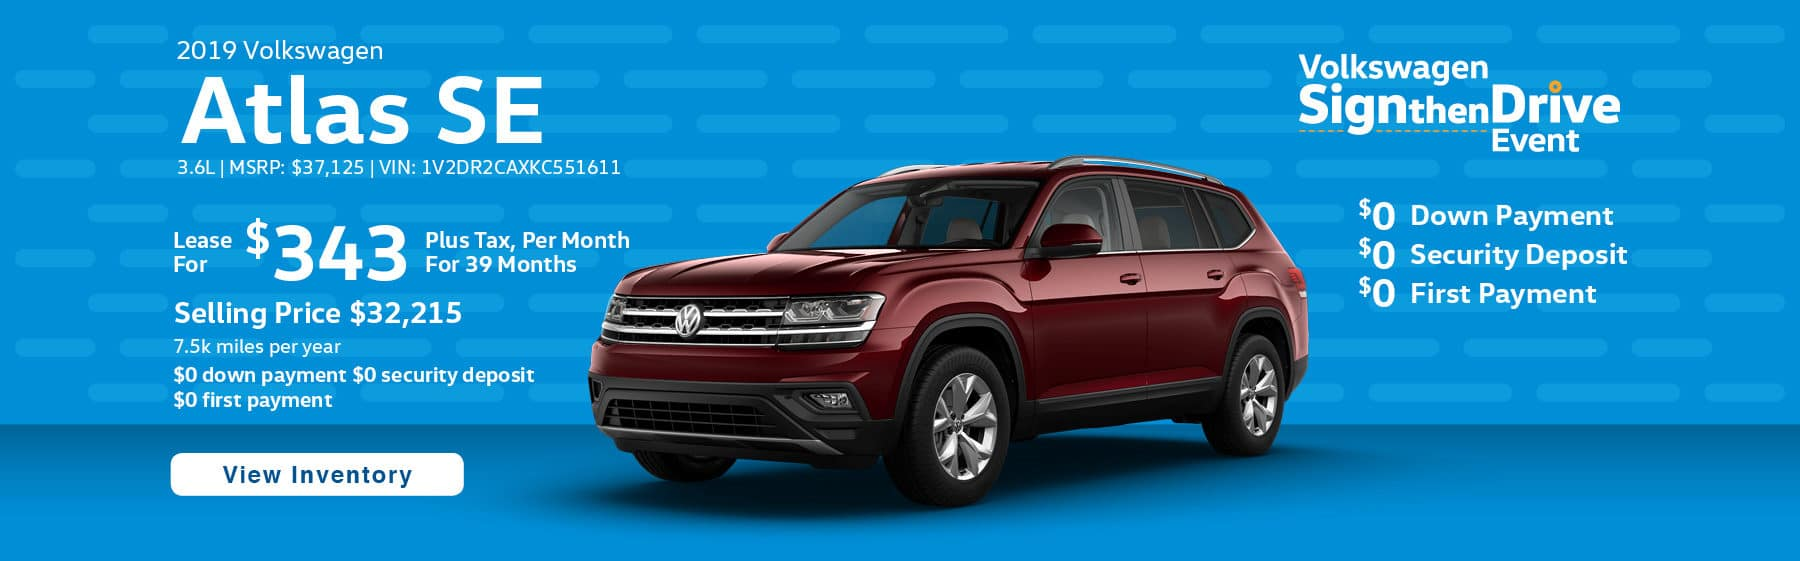 Lease the 2019 Volkswagen Atlas 3.6 SE for $343 plus tax for 39 months. $0 Down payment required.